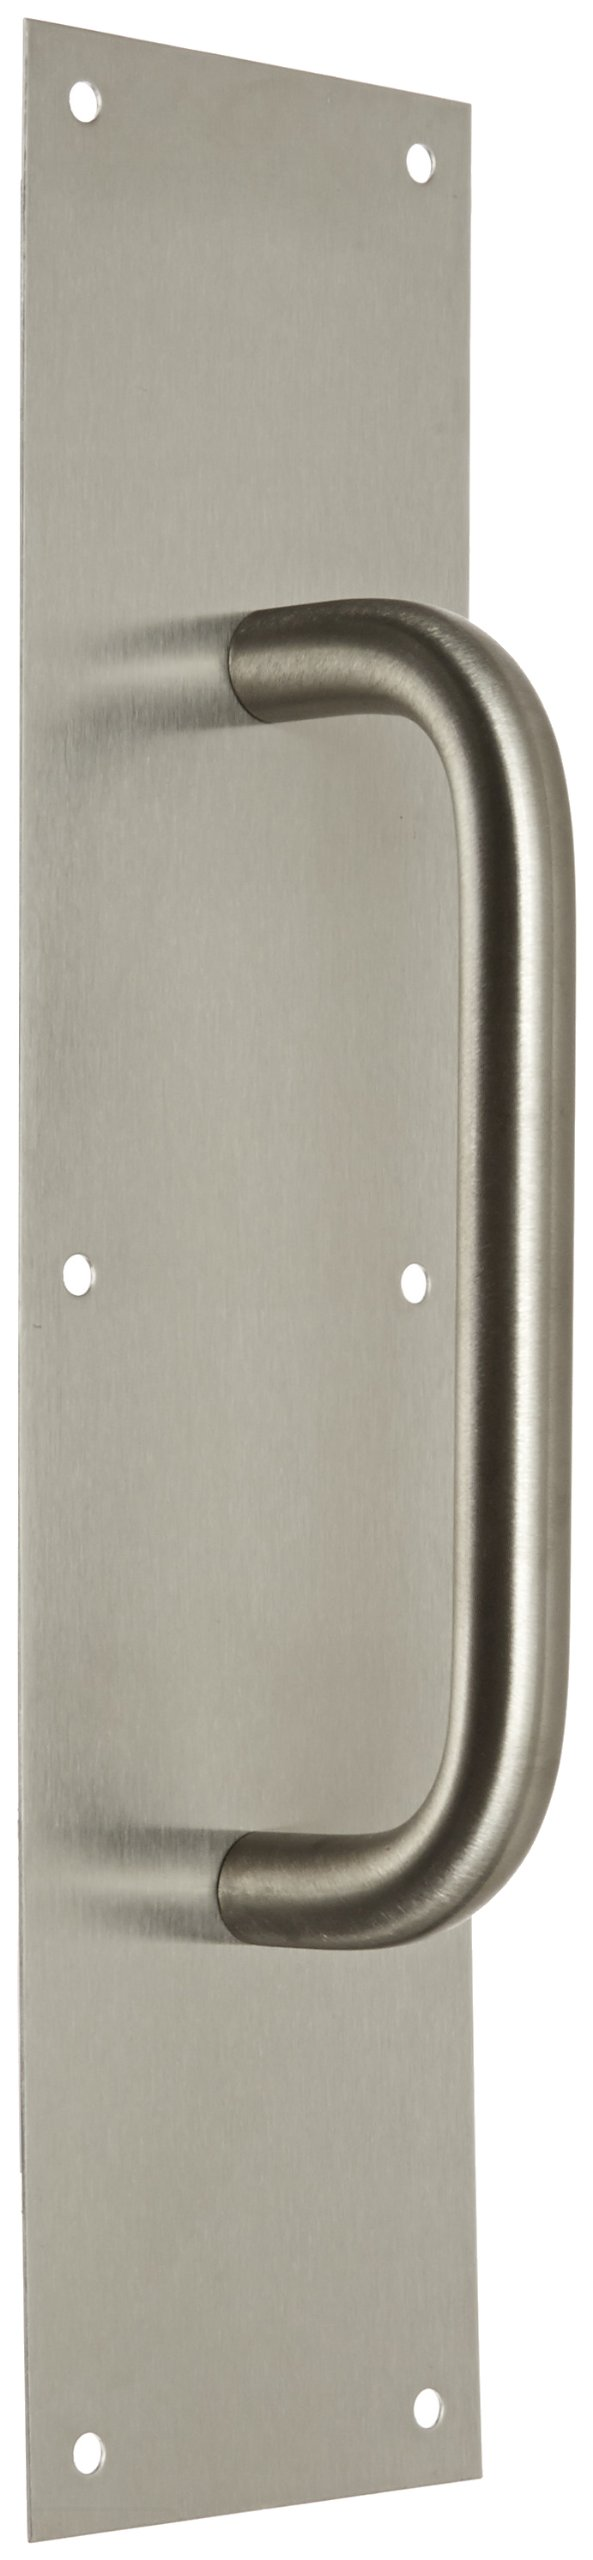 Rockwood 107 X 70C.32D Stainless Steel Pull Plate, 16'' Height x 4'' Width x 0.050'' Thick, 8'' Center-to-Center Handle Length, 3/4'' Pull Diameter, Satin Finish